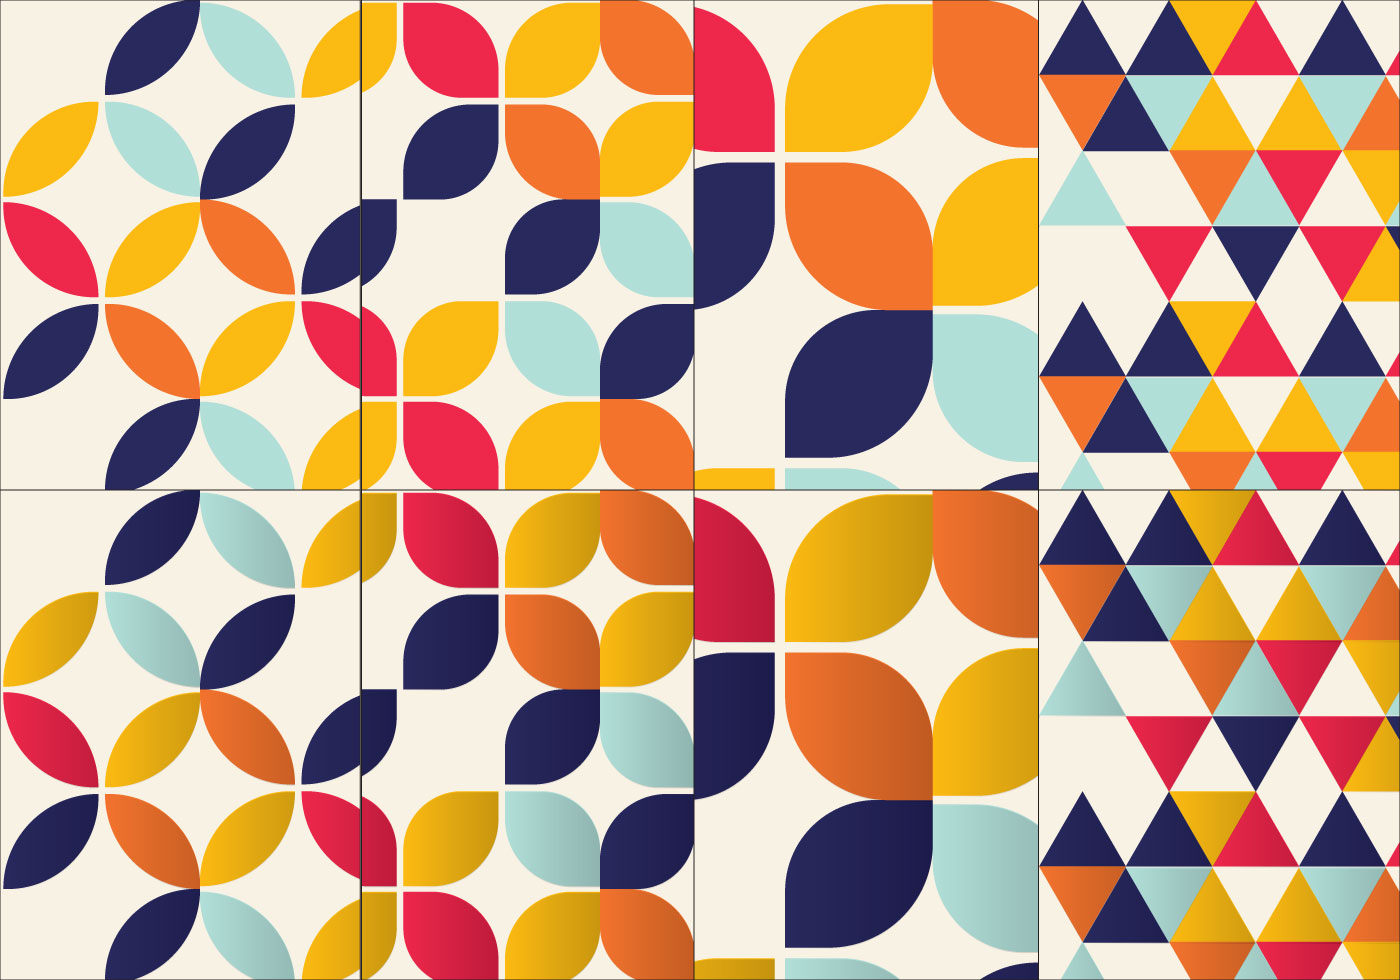 Bauhaus Inspired Pattern Set - Download Free Vector Art